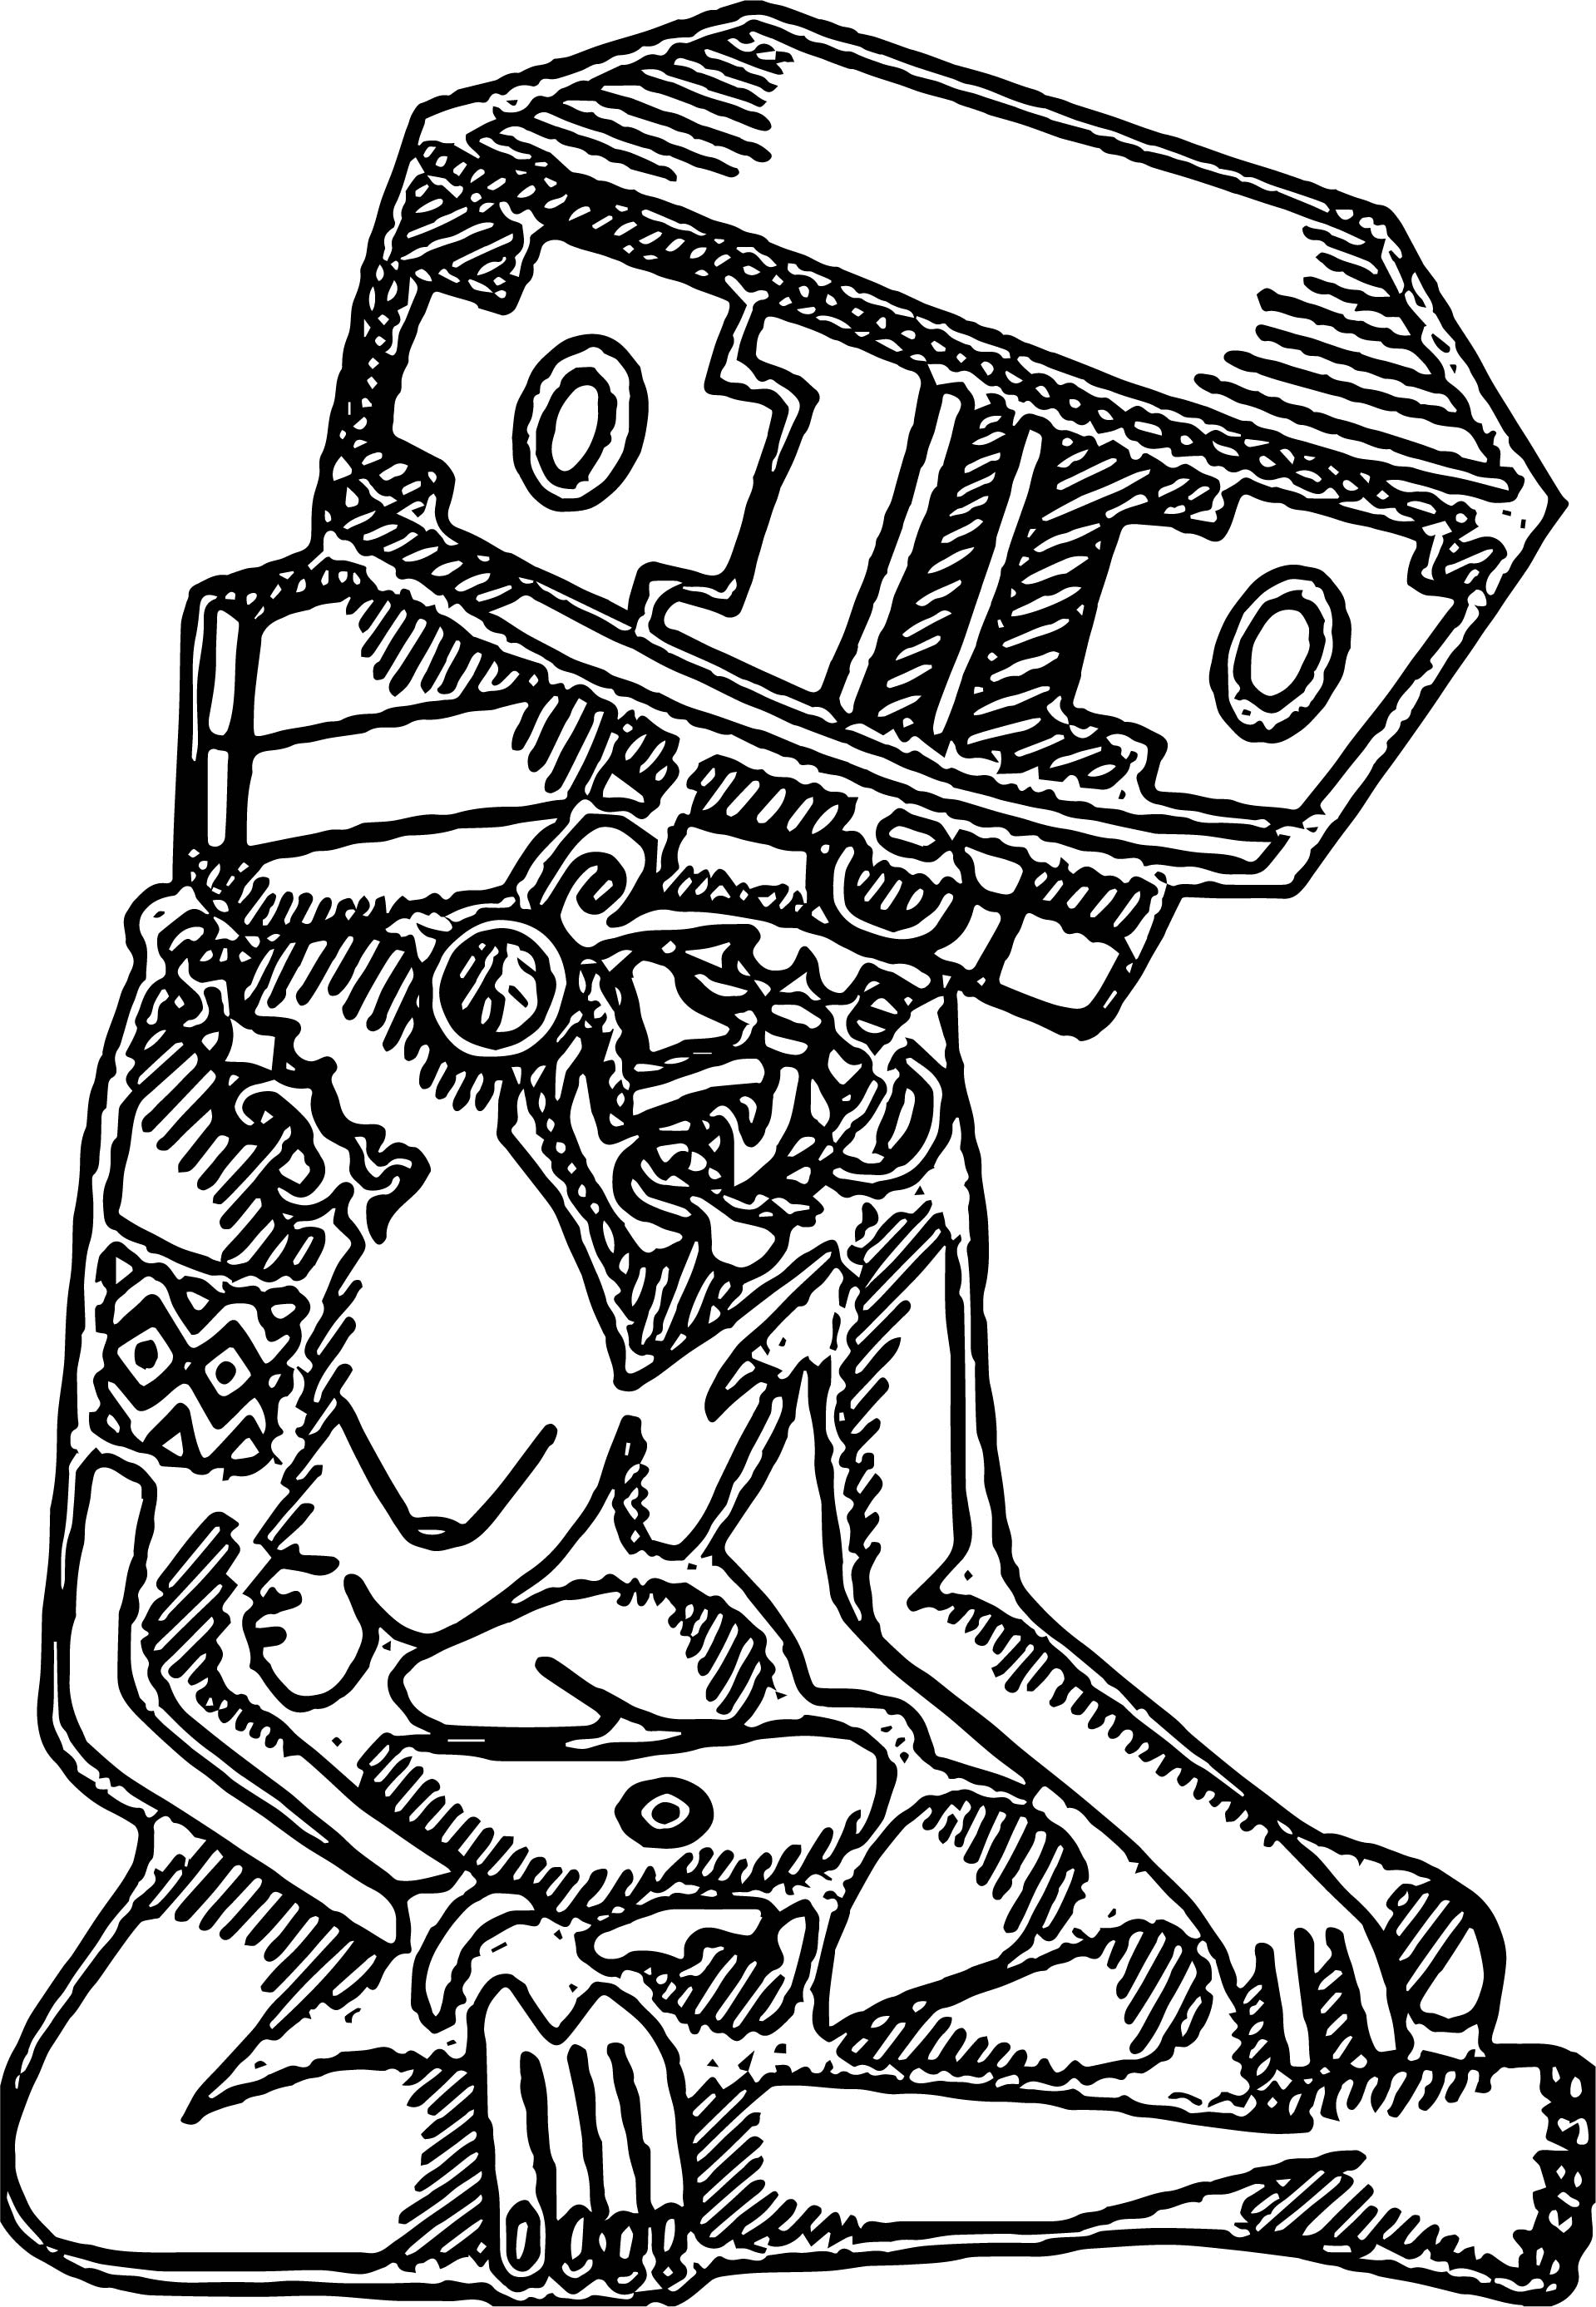 Aztec huehueteotl coloring page for Aztec sun coloring page